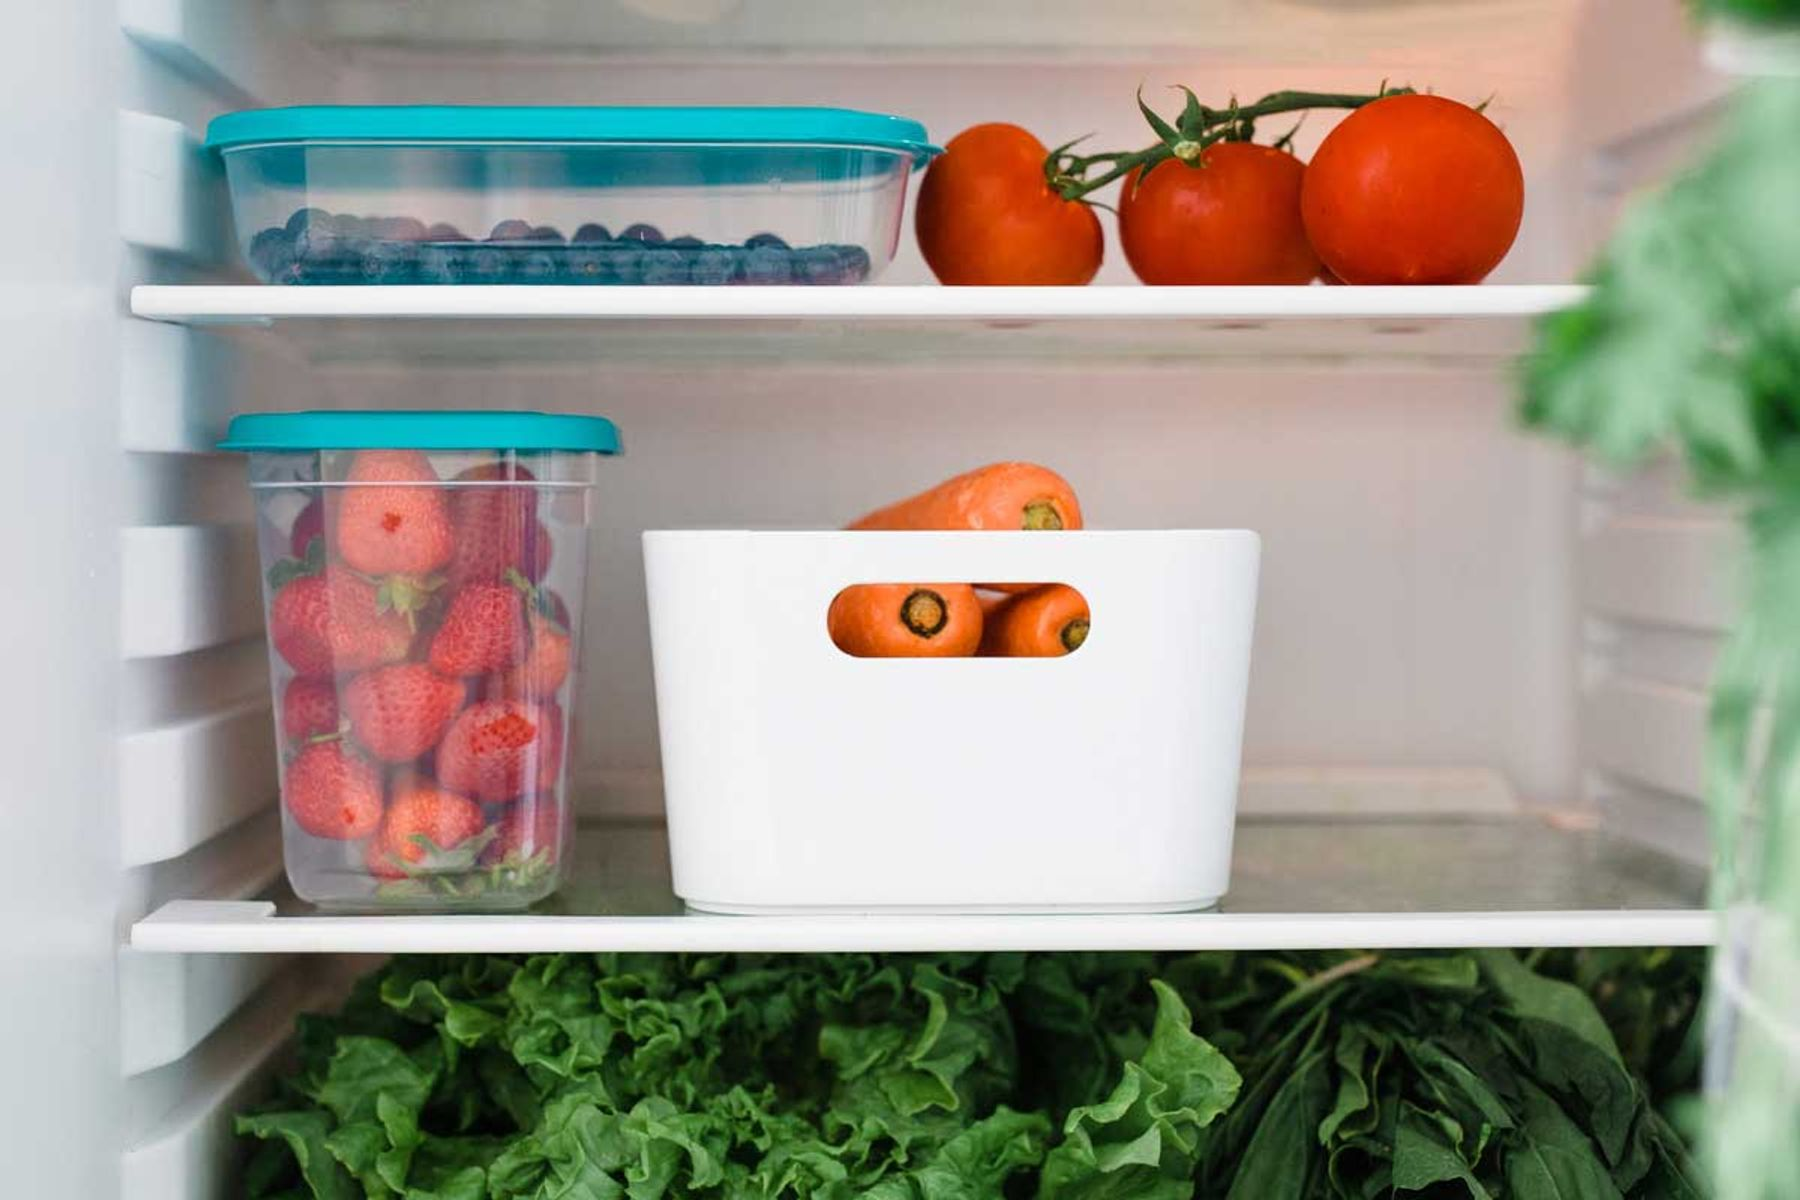 A view of the inside of a fridge with fruit and vegetables inside